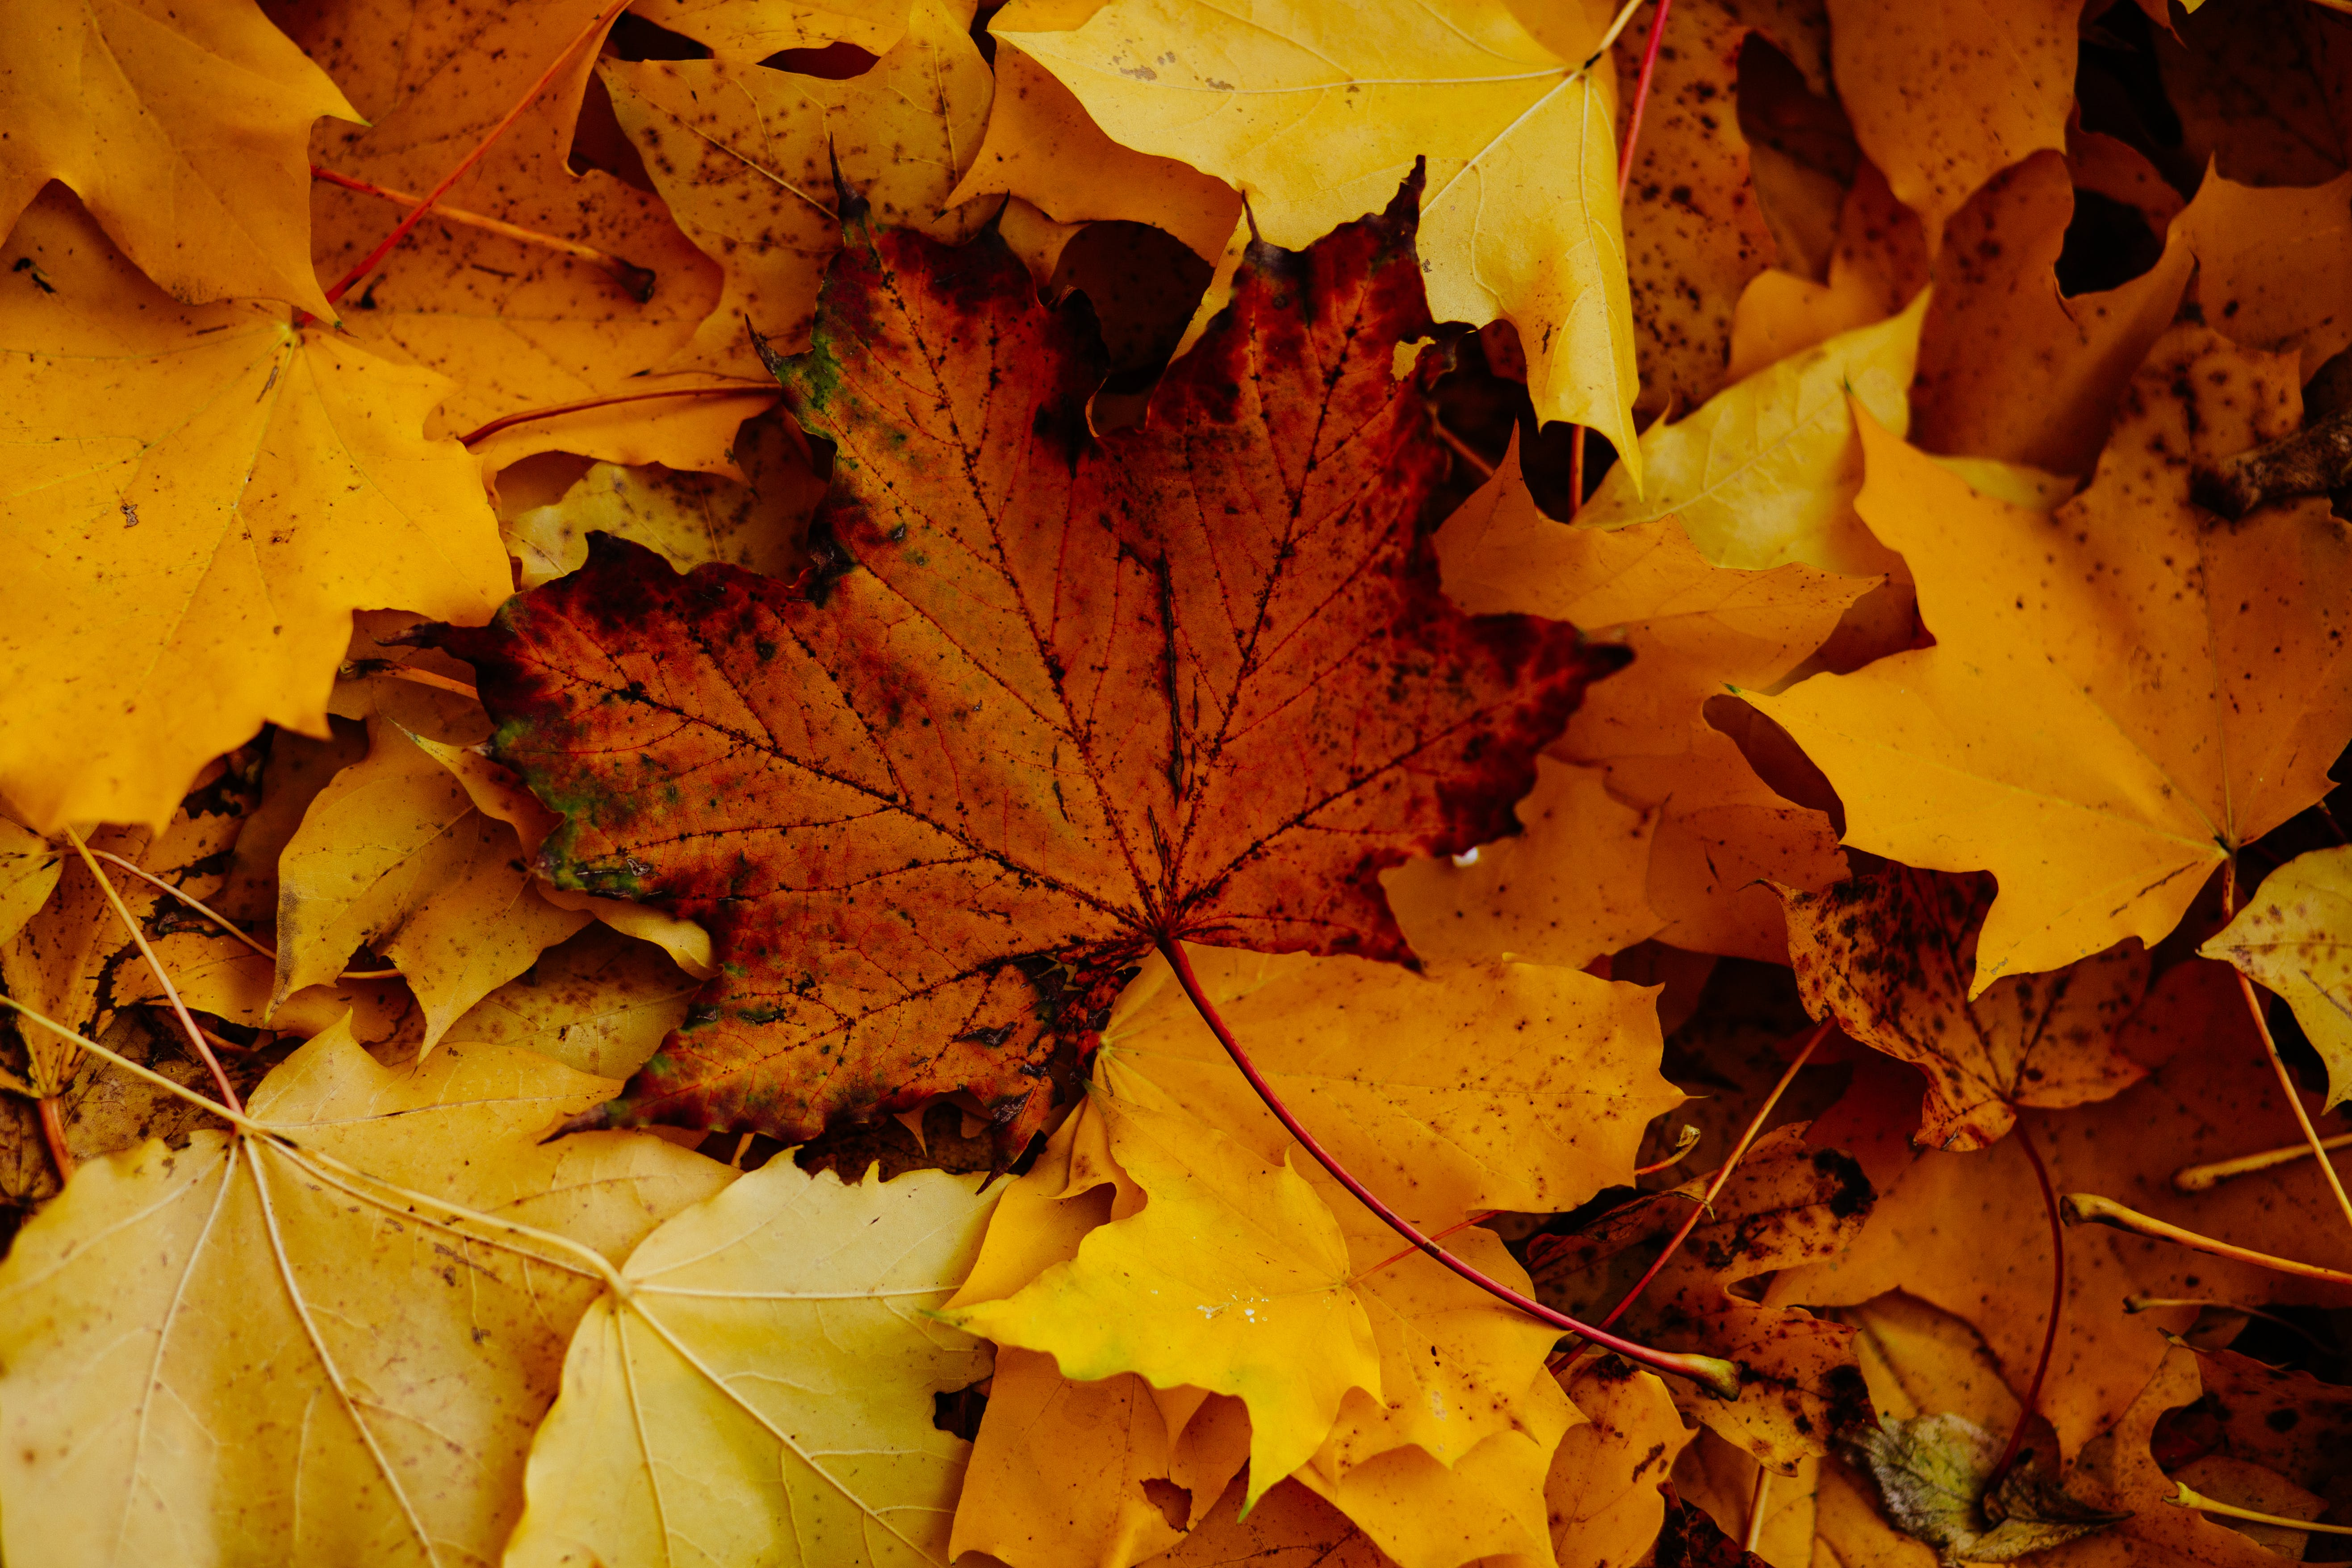 Close-Up Photo of Dry Maple Leaves